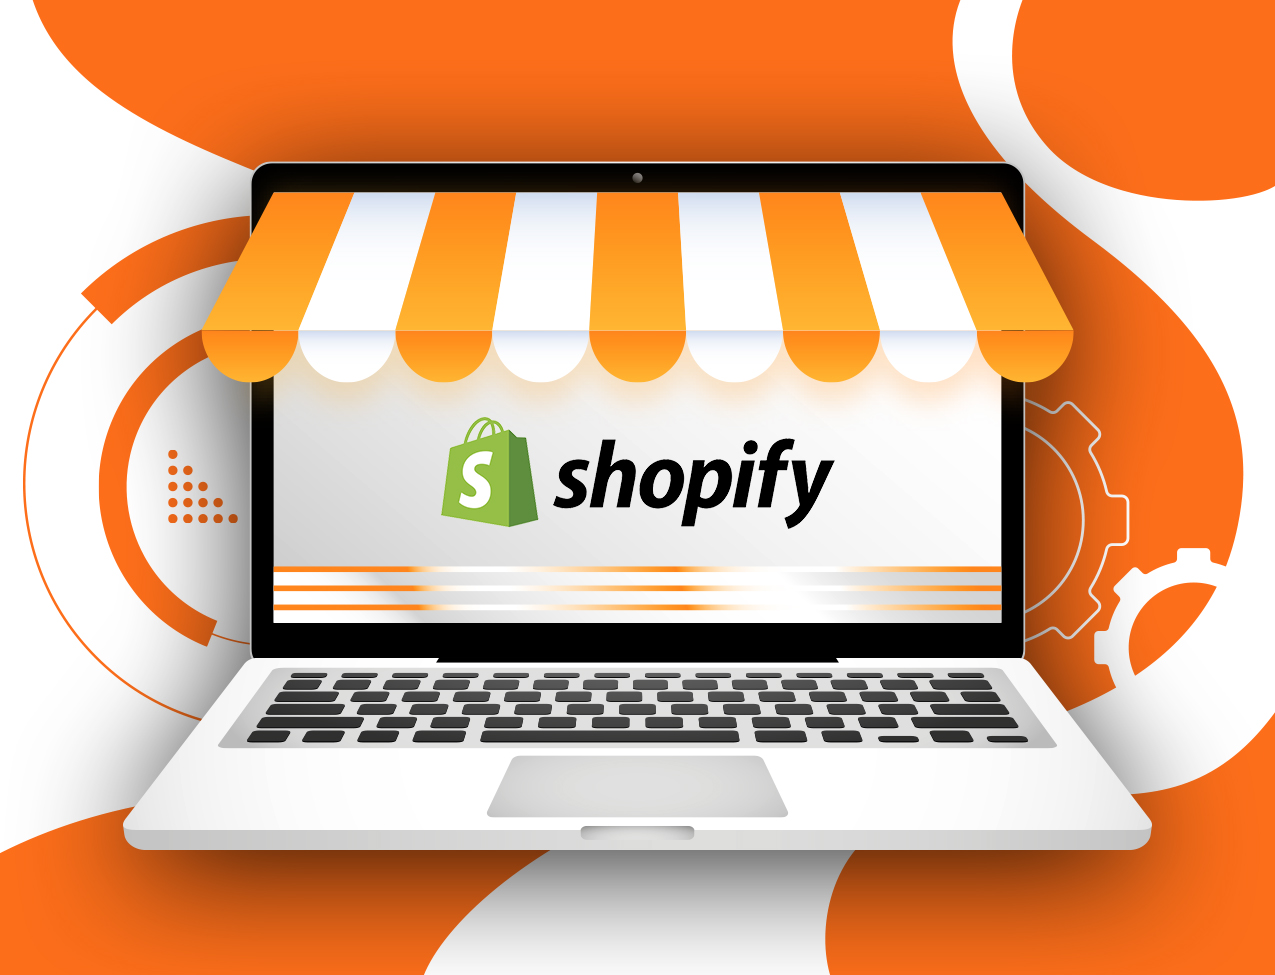 Step By Step Guidance for Shopify eCommerce Store Development